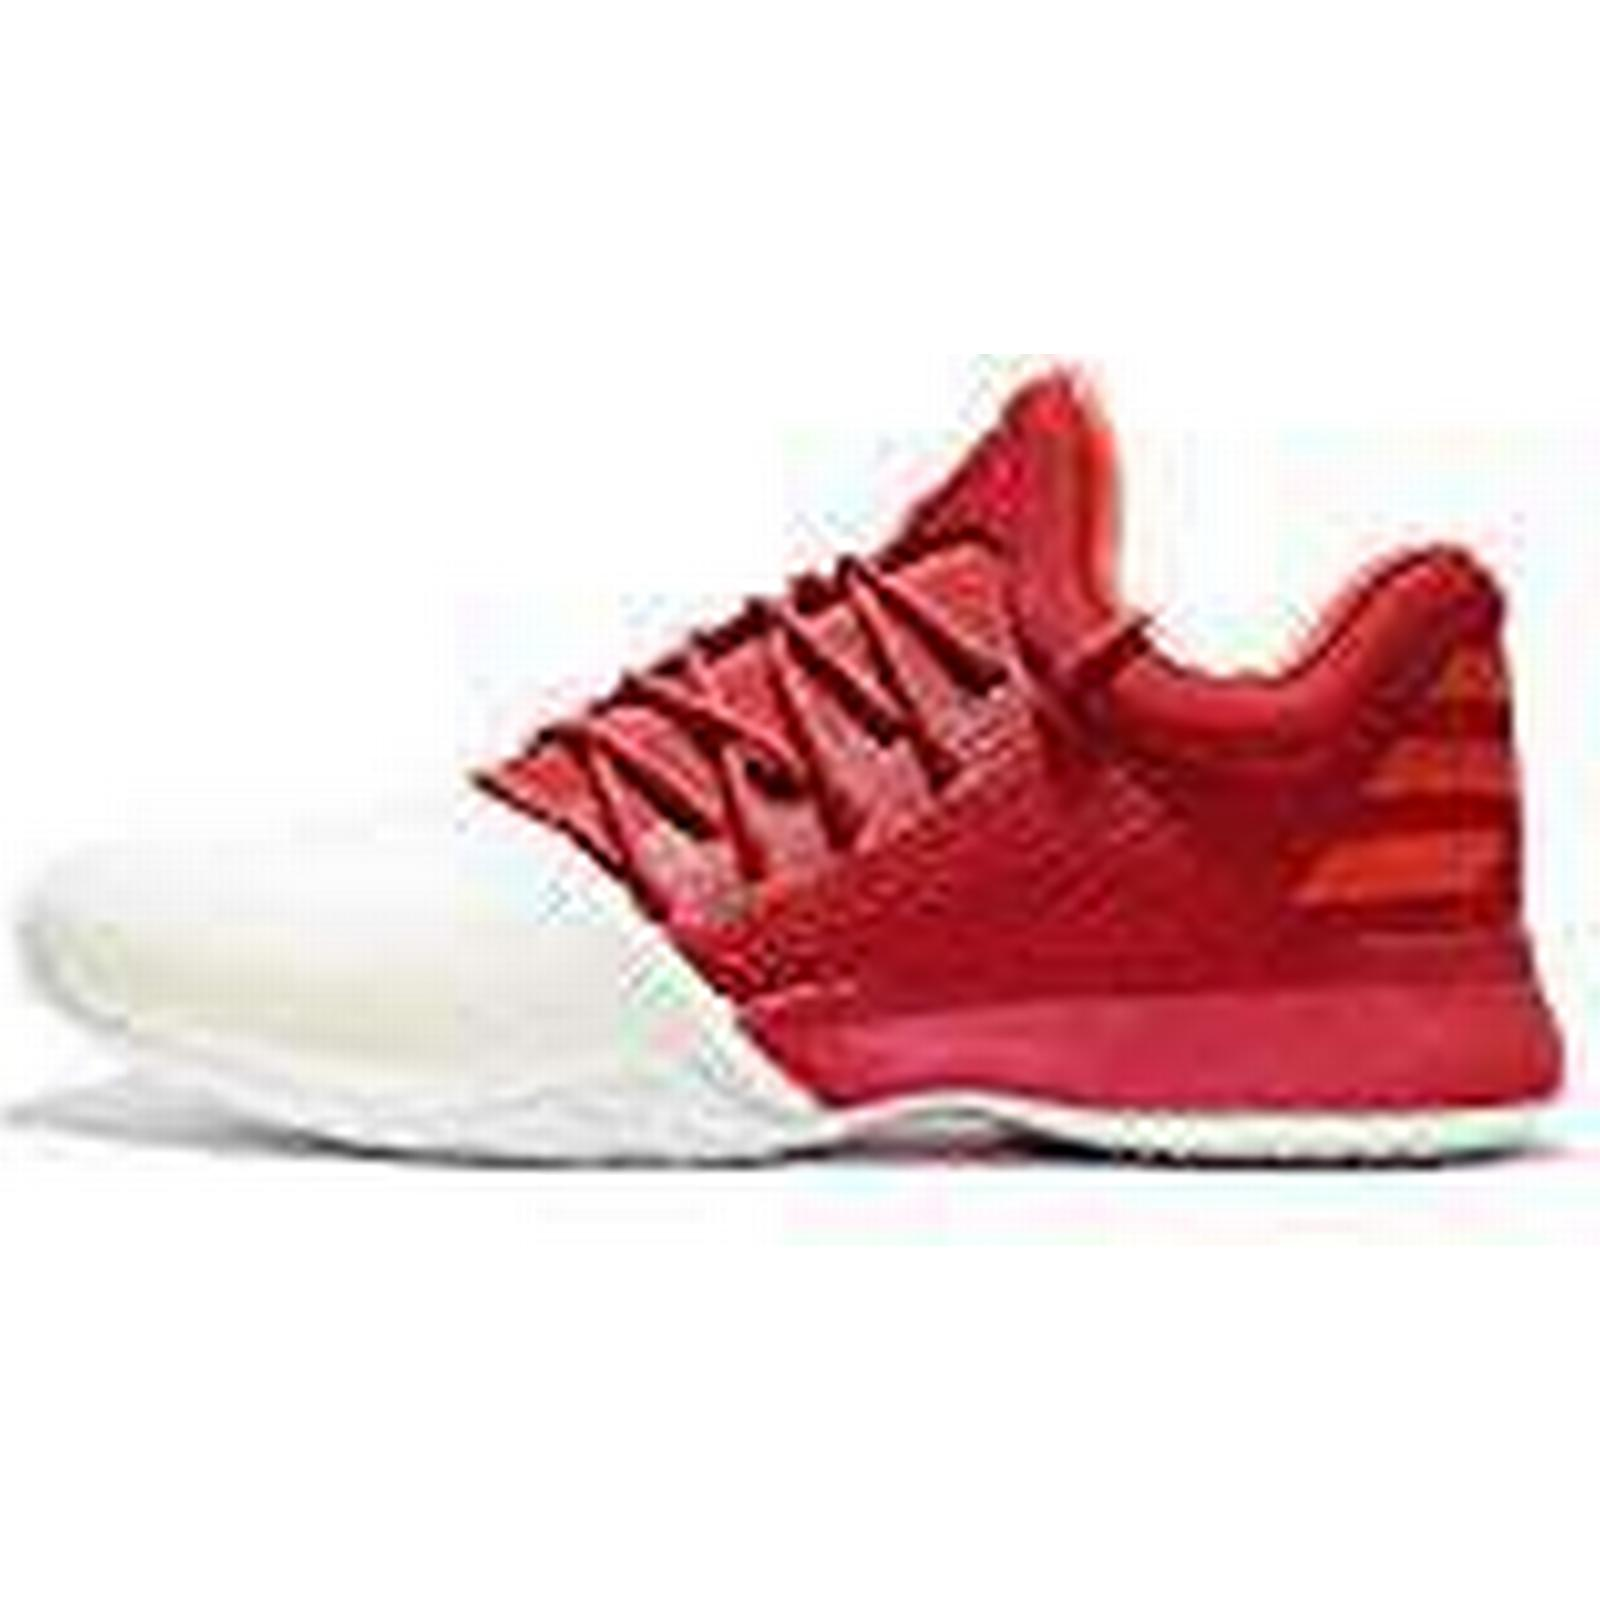 outlet store a420f 09b1f ... uk adidas men harden vol. 1 size bw0547 trainers red white size 1 uk 15